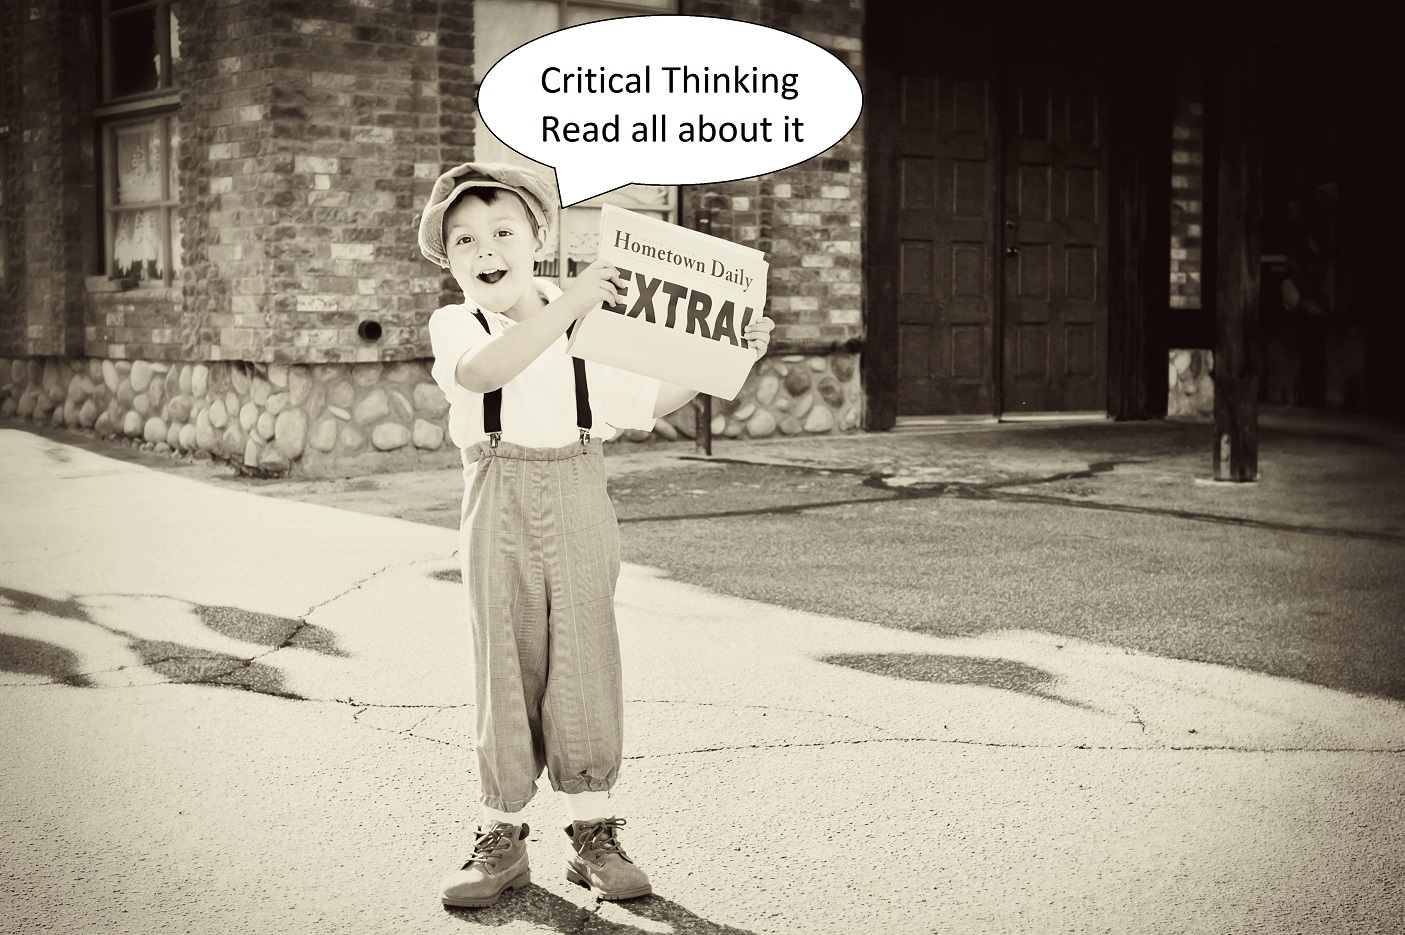 How To Be a Top Critical Thinker